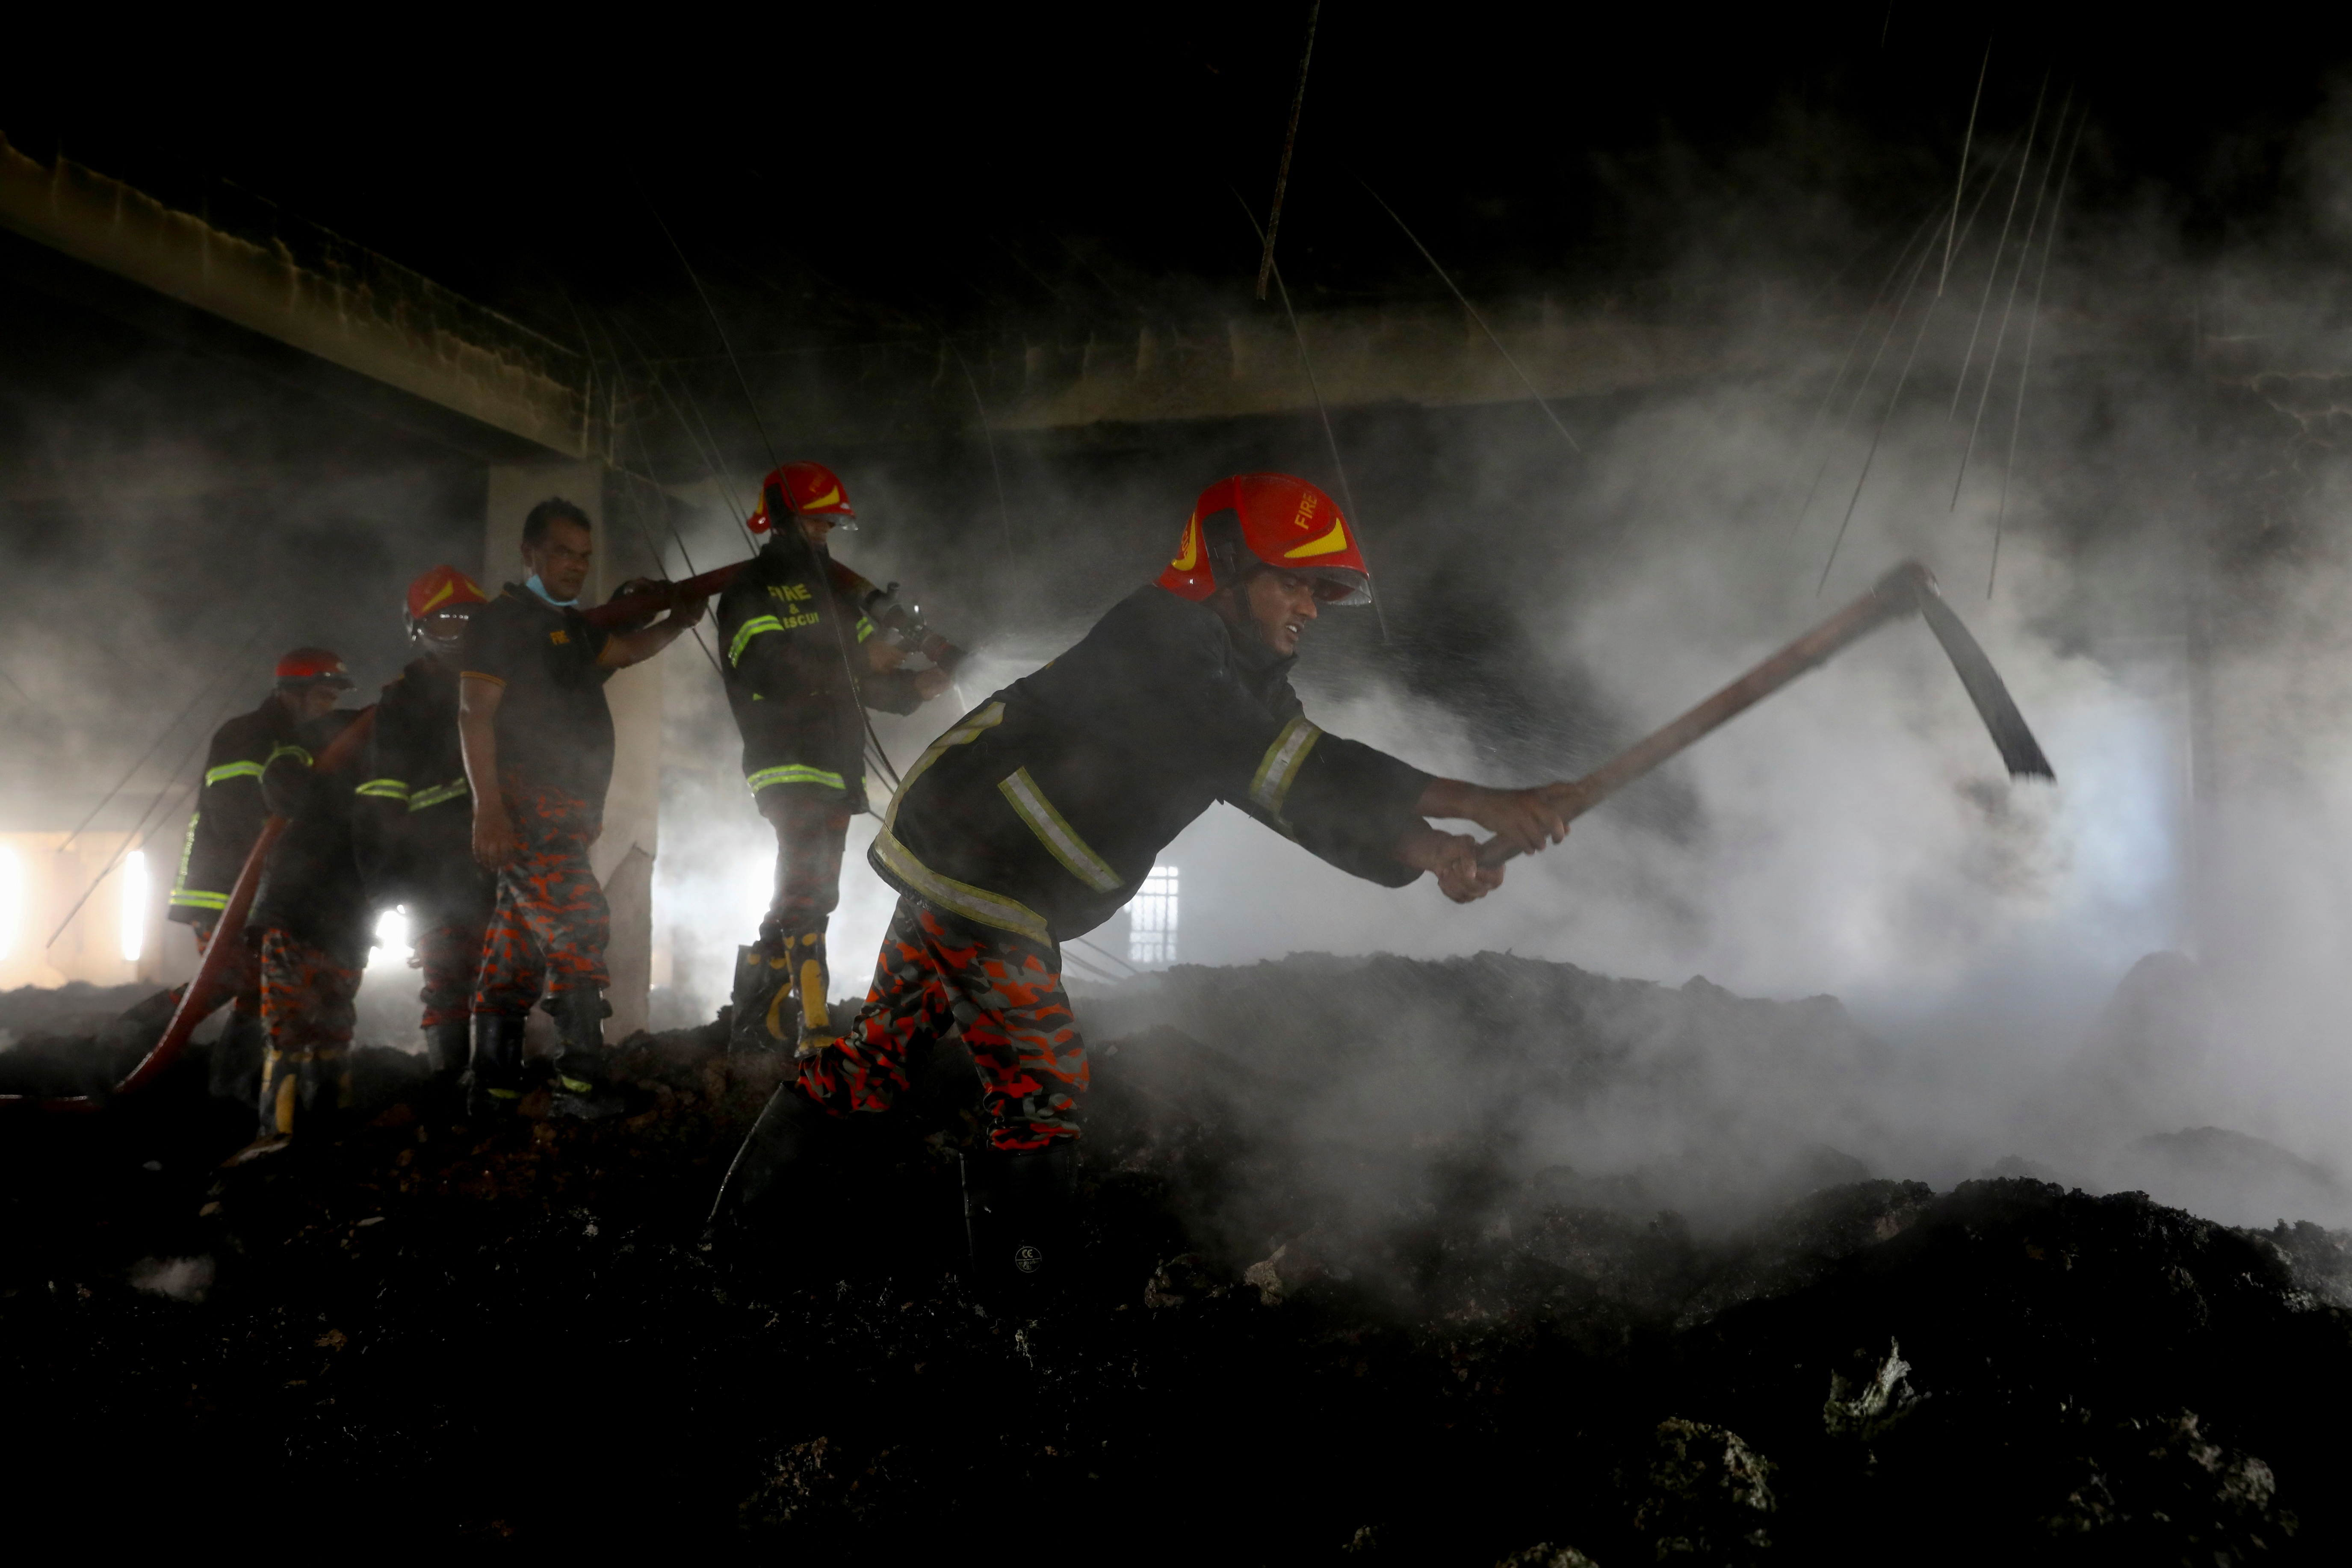 Firefighters work at the site of a fire that broke out on Thursday at Hashem Foods Ltd factory in Rupganj, Narayanganj district, on the outskirts of Dhaka, Bangladesh, July 10, 2021. REUTERS/Mohammad Ponir Hossain